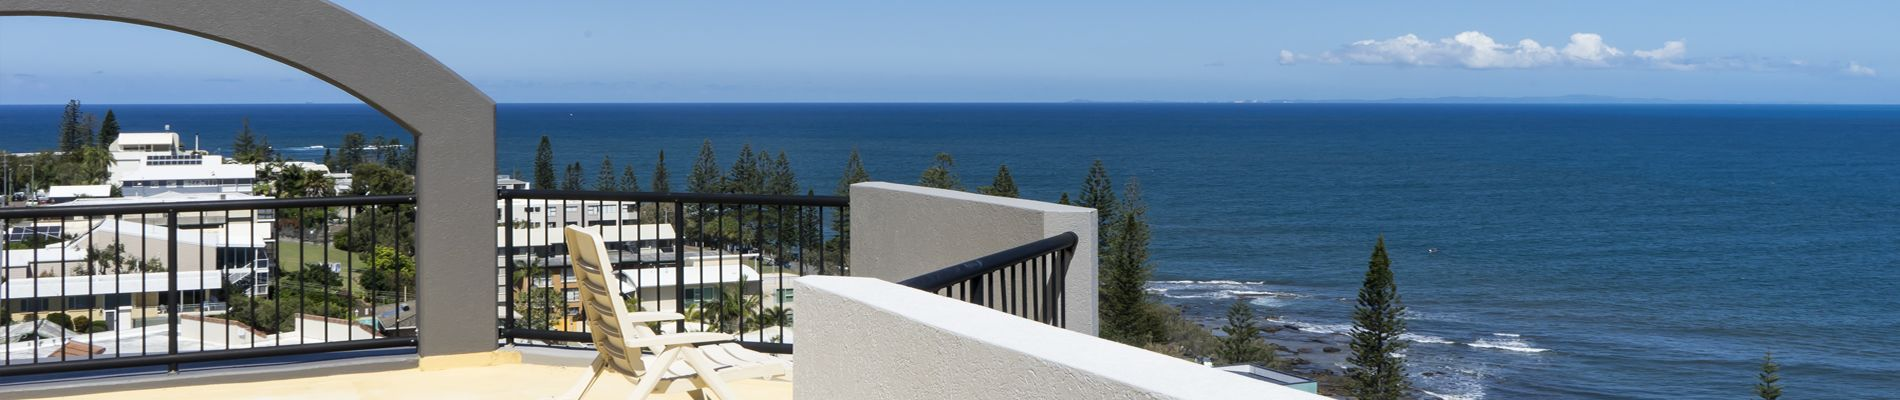 Kings Beach Caloundra Meridian Caloundra Holiday Apartment Location